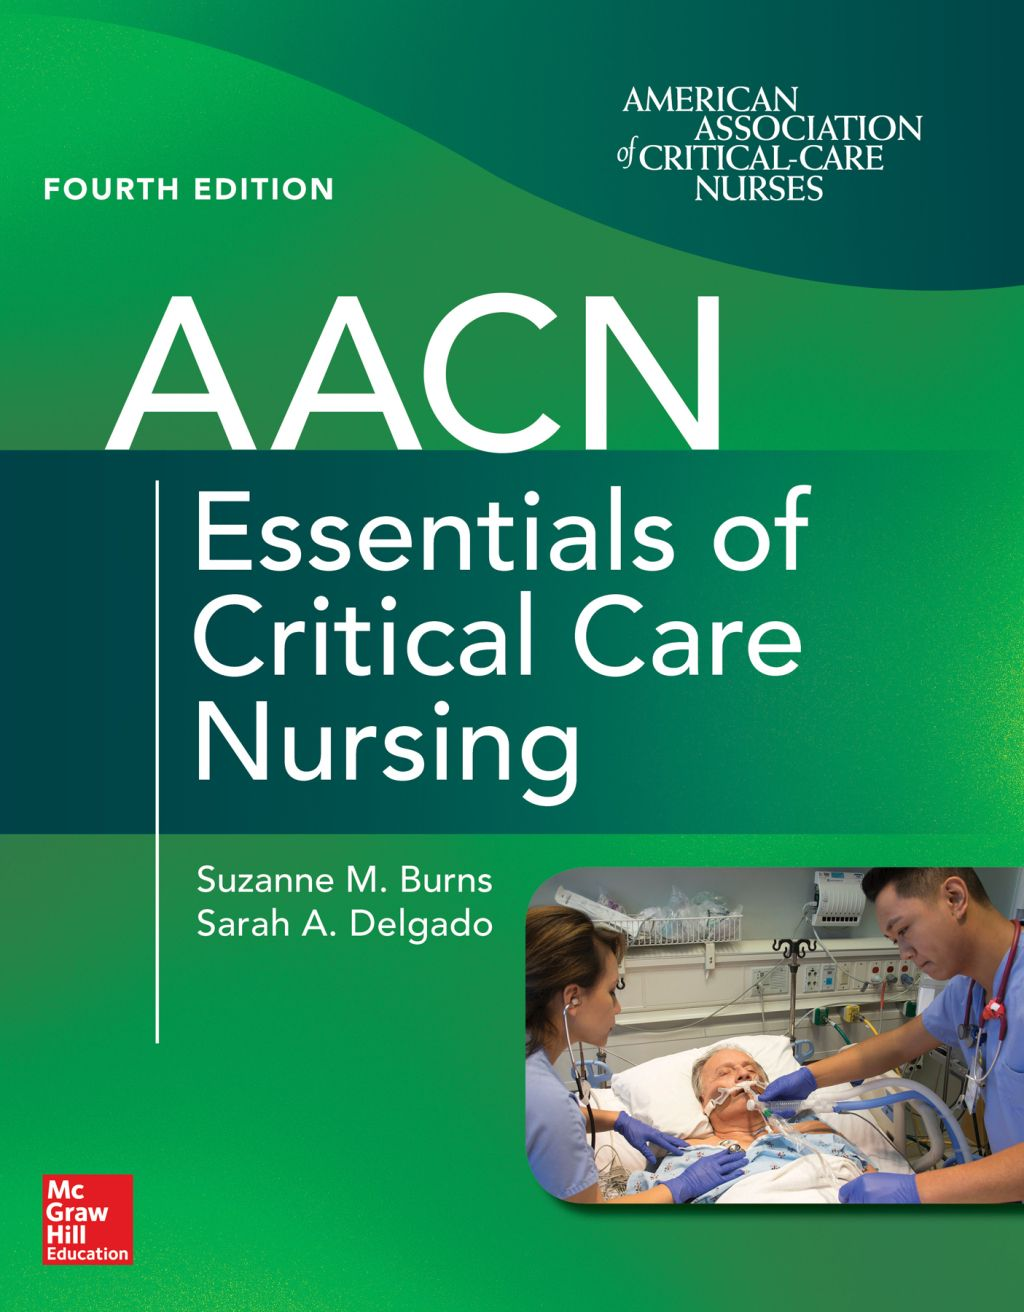 Aacn essentials of critical care nursing fourth edition